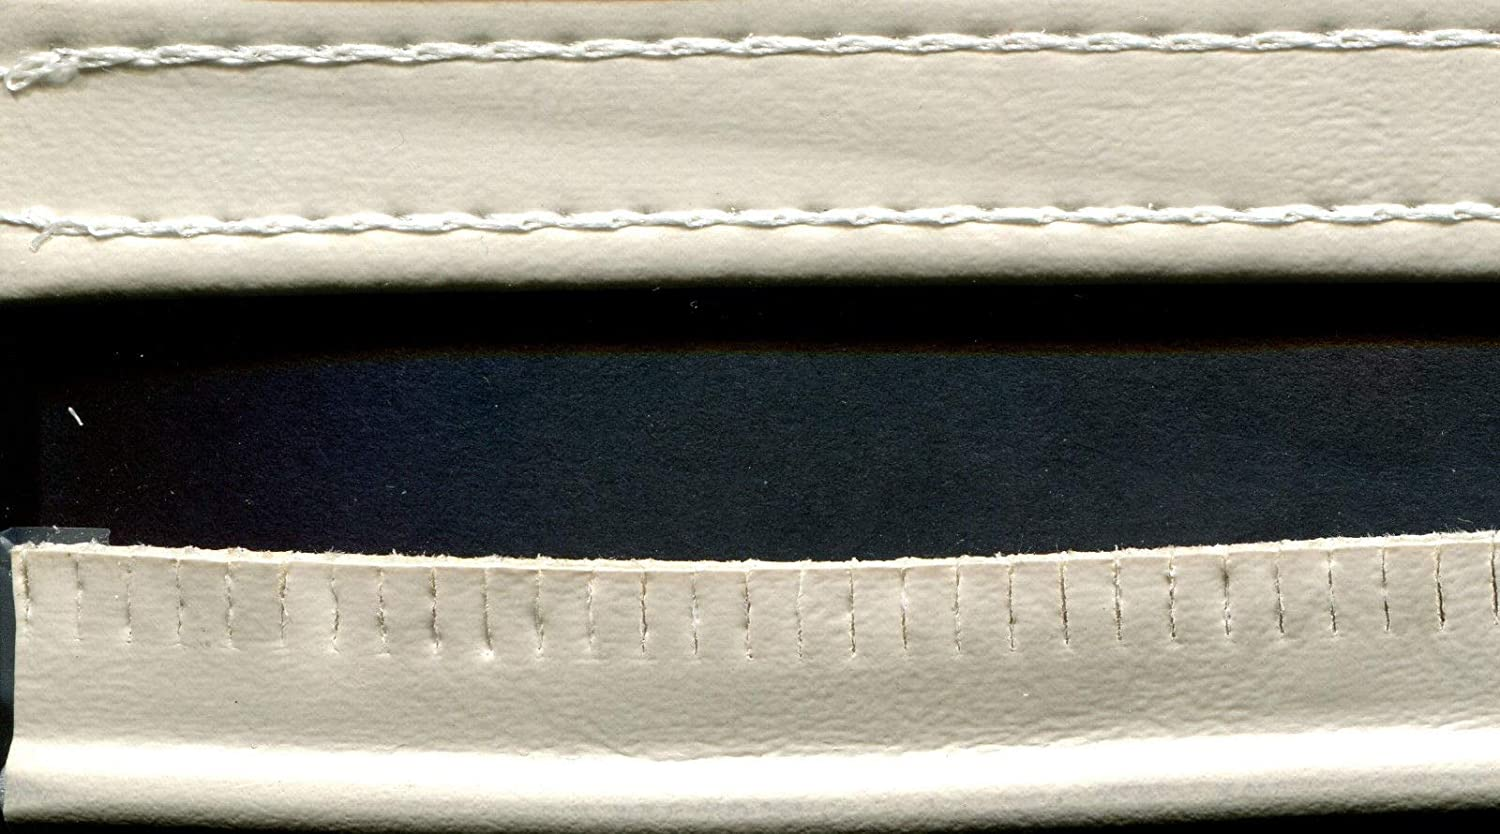 Bry-Tech Marine1 Marine Welt Piping Trim to sew Fabric Panels Together by The Yard Bry-Tech Distributors Inc.